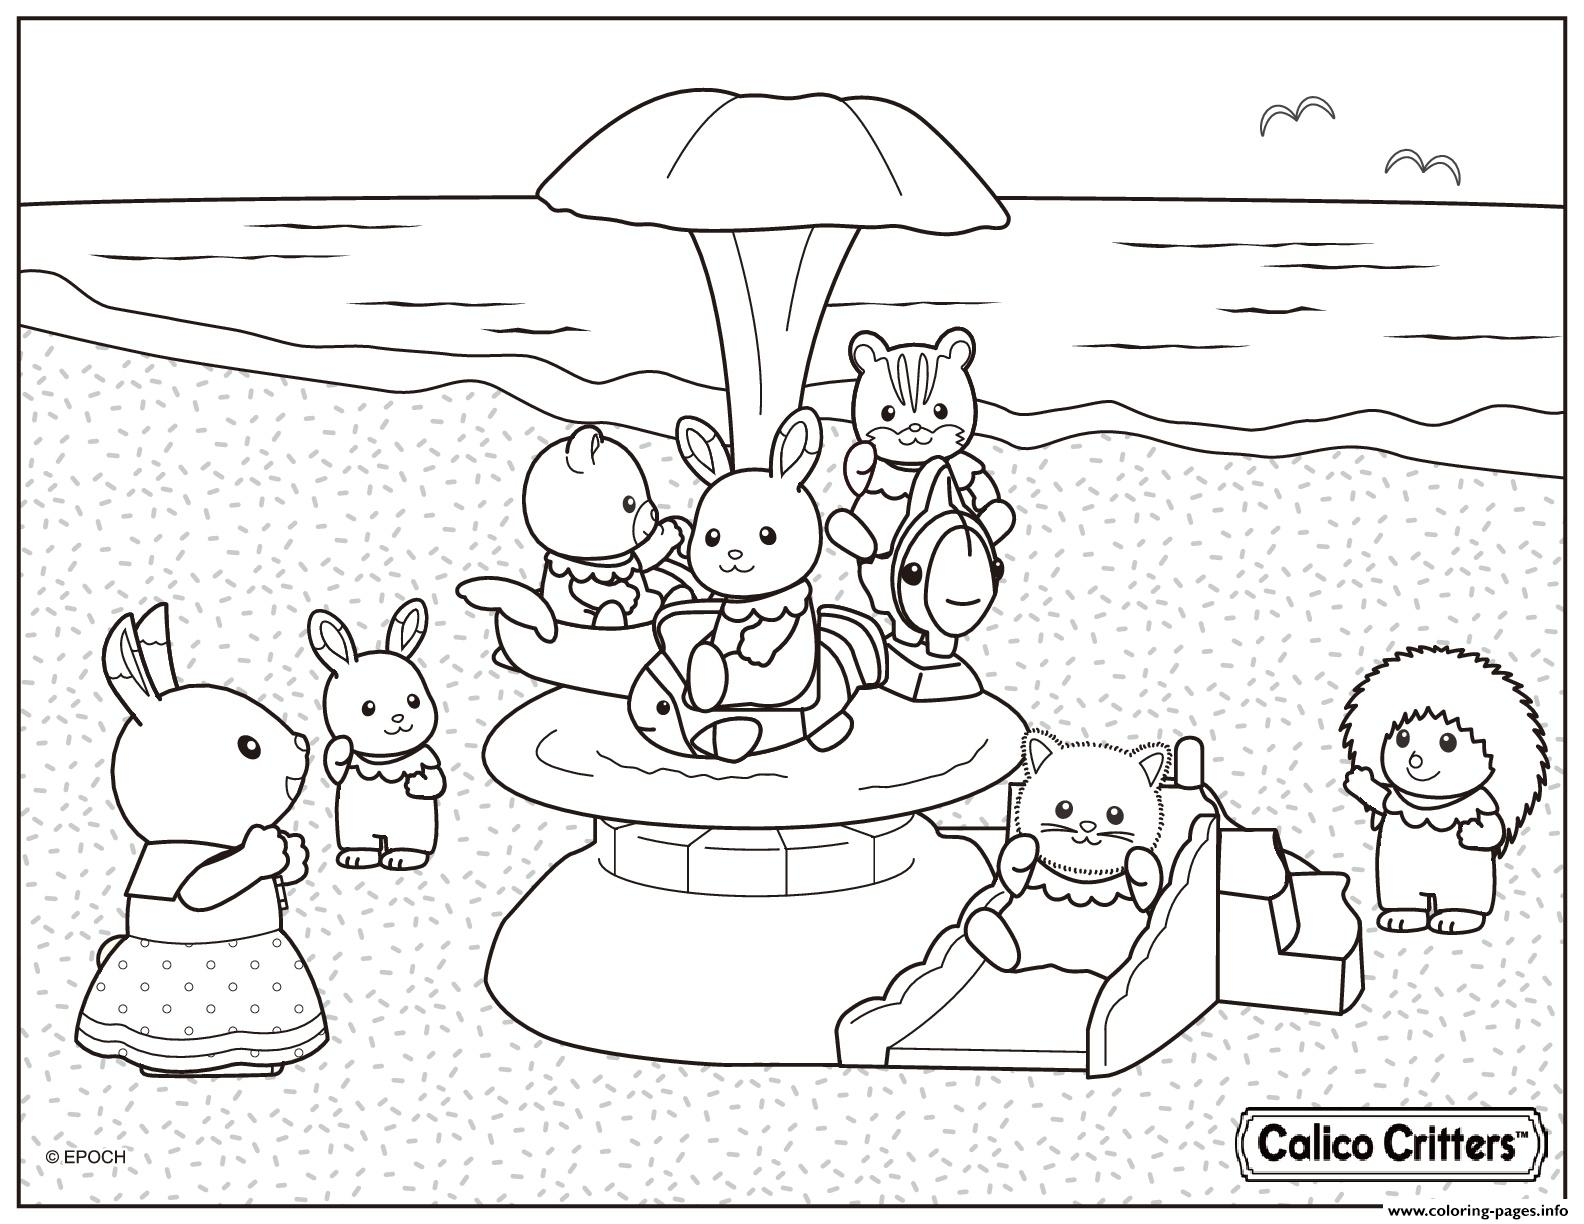 Calico Critters In The Beach For